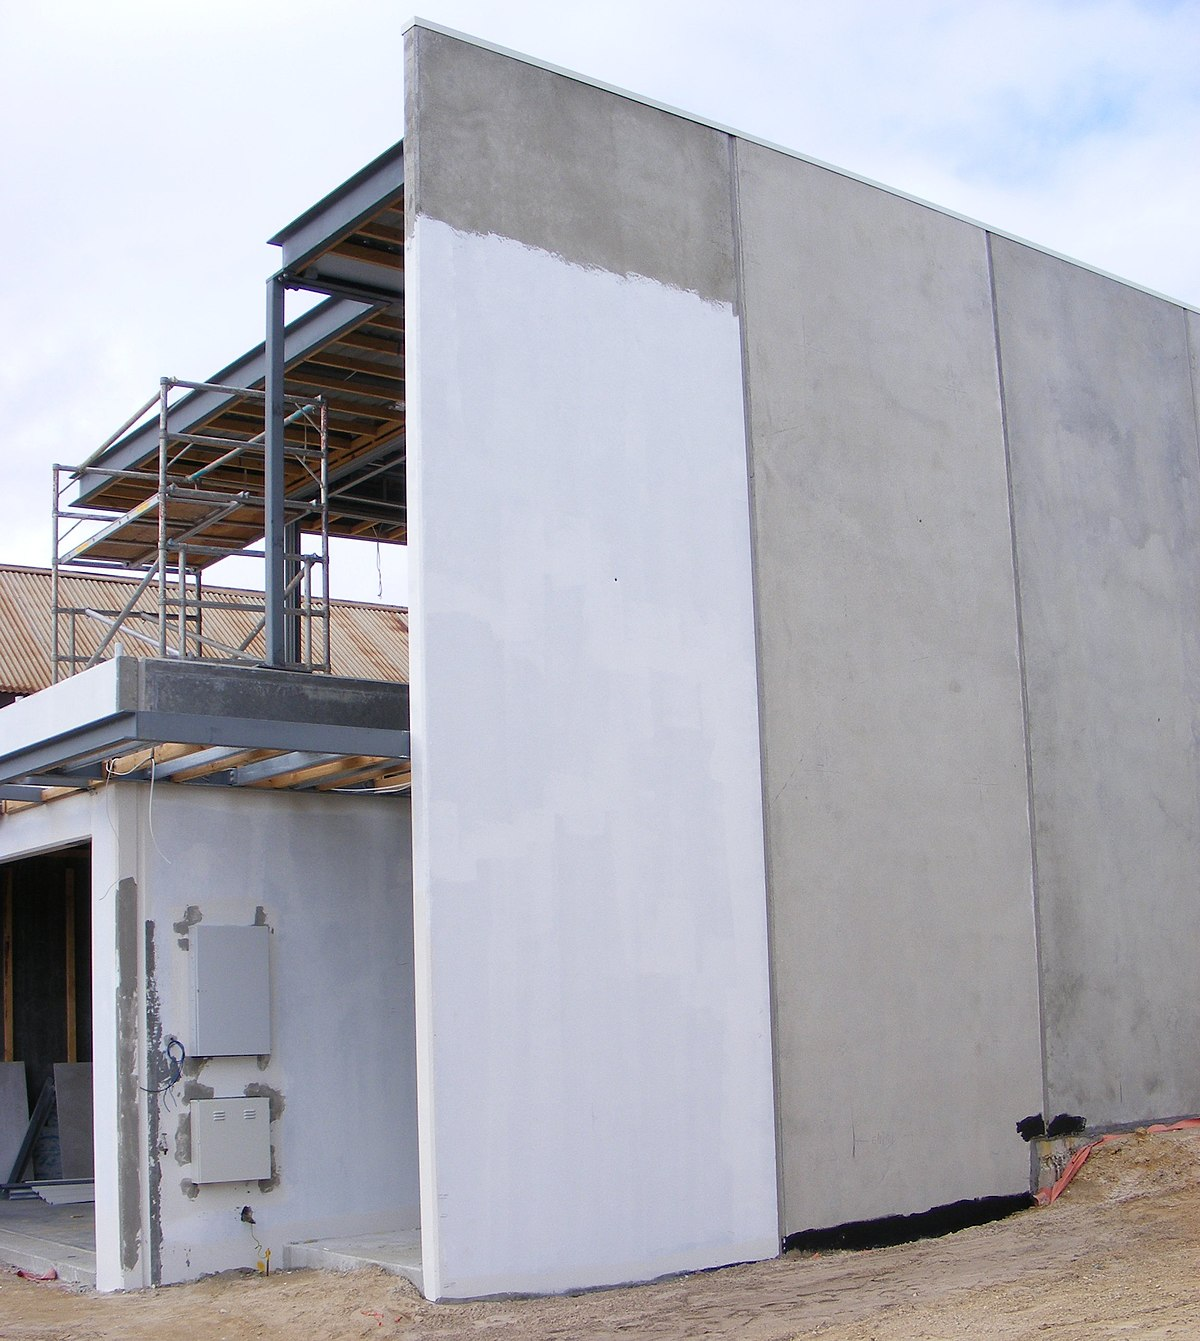 Cmu Wall Construction : Precast concrete wikipedia